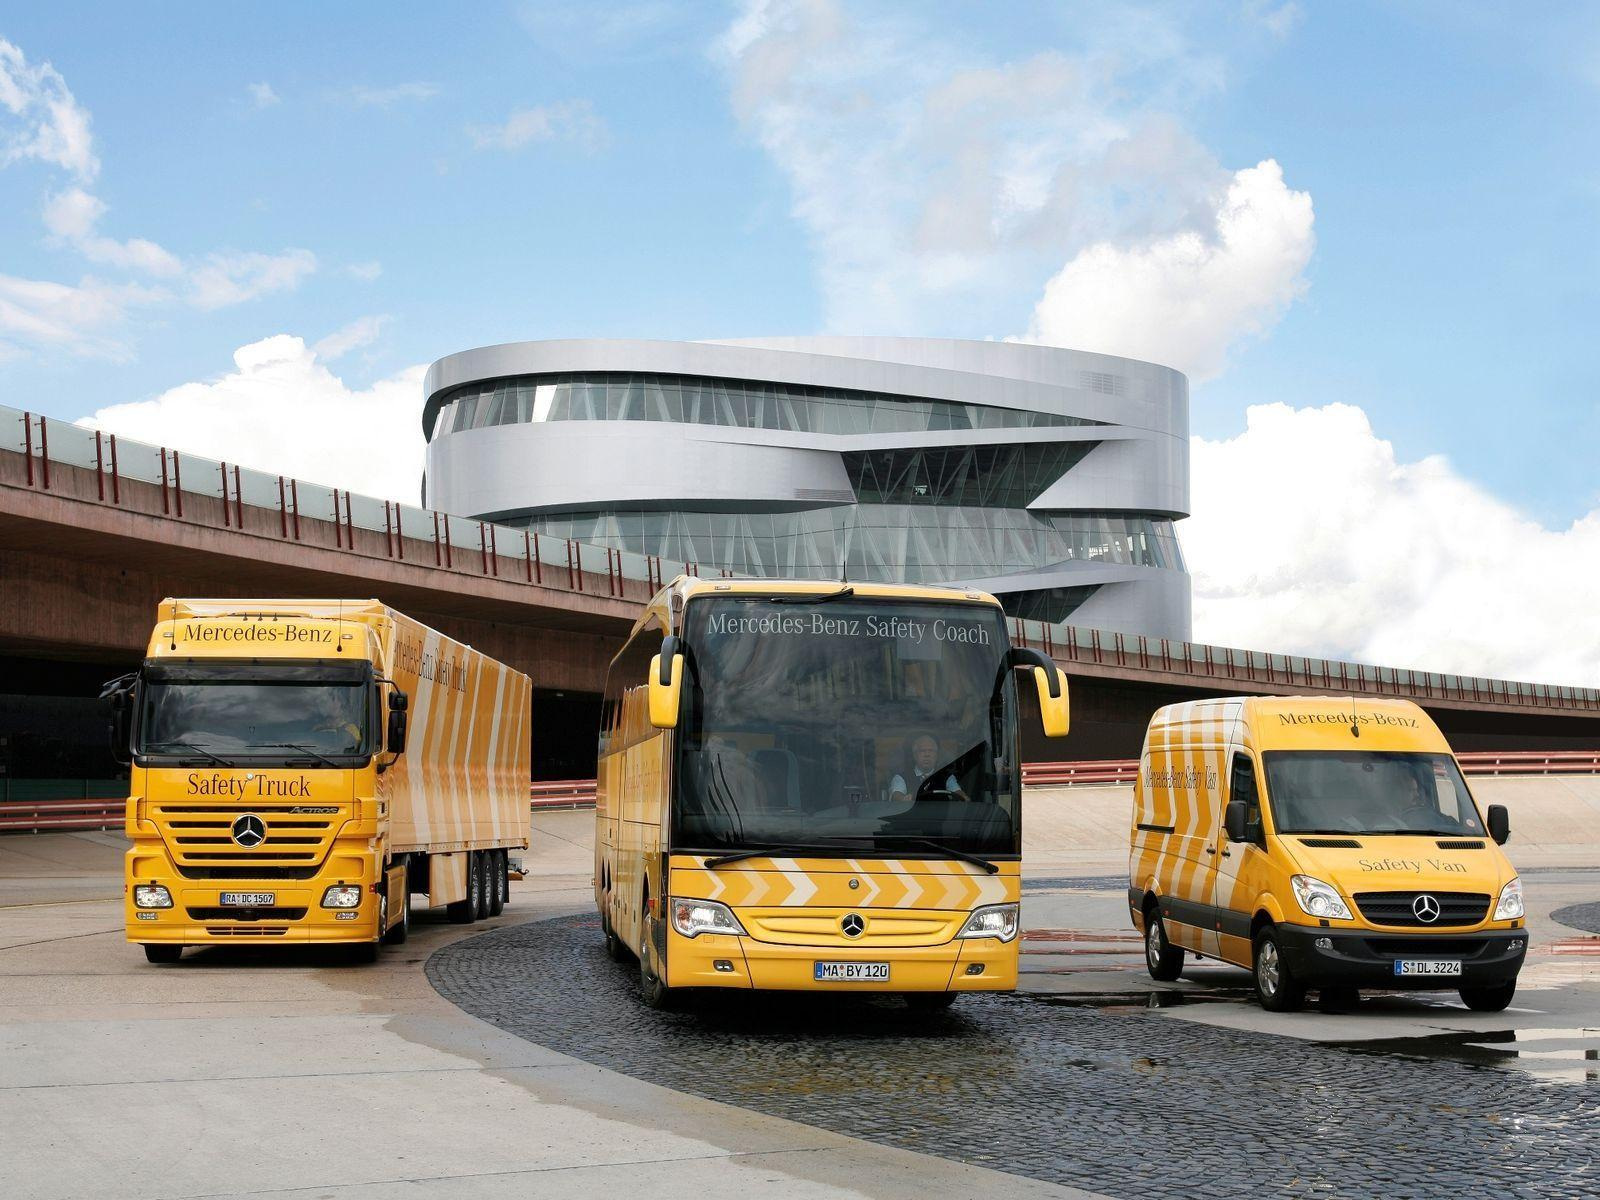 Download Wallpapers mercedes bus truck airport actros, 1600x1200